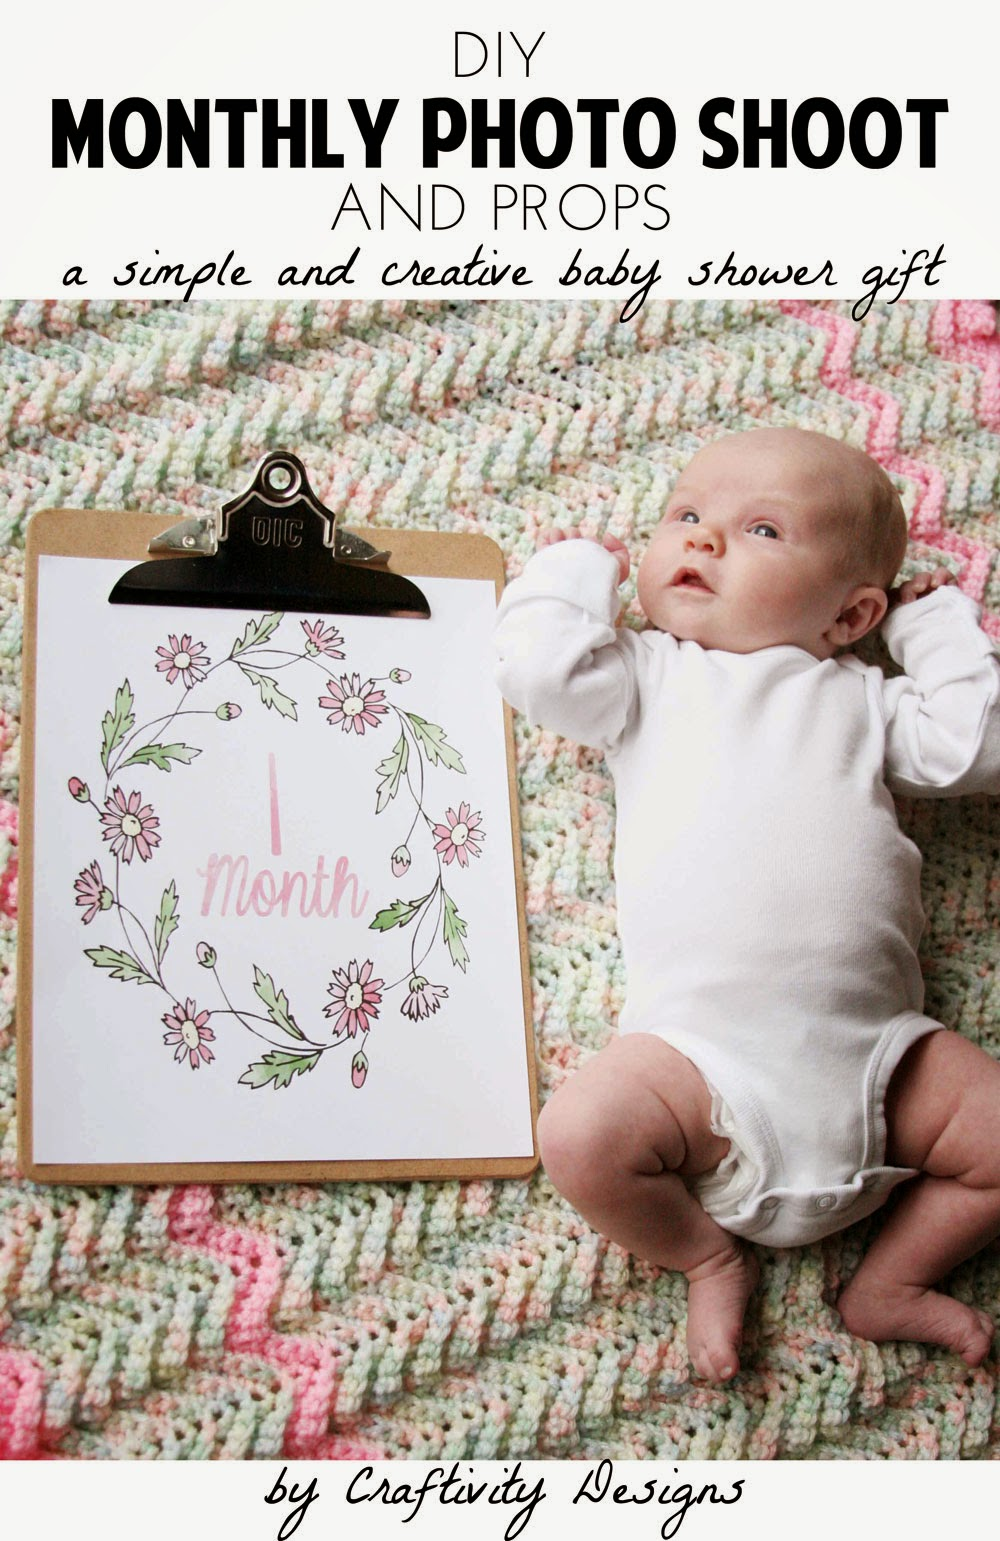 diy newborn baby photo ideas - DIY Monthly Baby s – Craftivity Designs